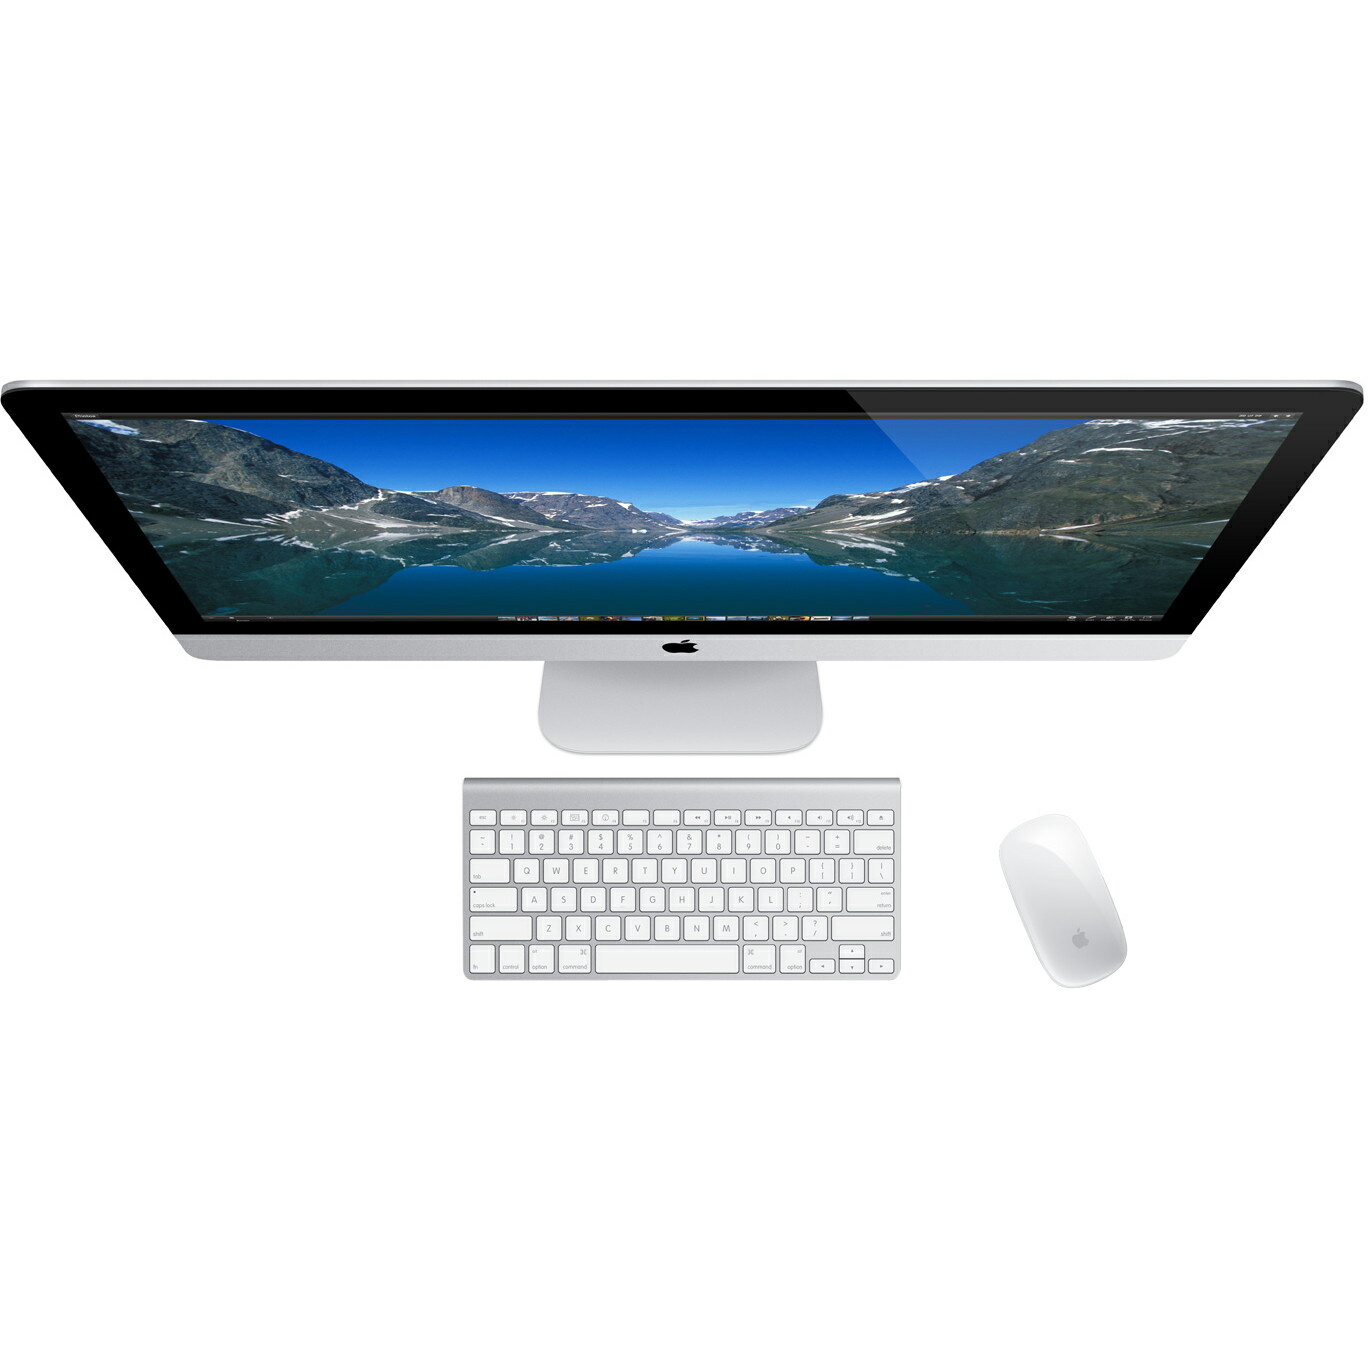 "Apple iMac ME088LL/A All-in-One Computer - Intel Core i5 3.20 GHz - 8 GB DDR3 SDRAM - 1 TB HDD - 27"" 2560 x 1440 - Mac OS X 10.8 Mountain Lion - Desktop - NVIDIA GeForce GT 755M 1 GB Graphics - Wireless LAN - Bluetooth - 4 x Total USB Port(s) 5"